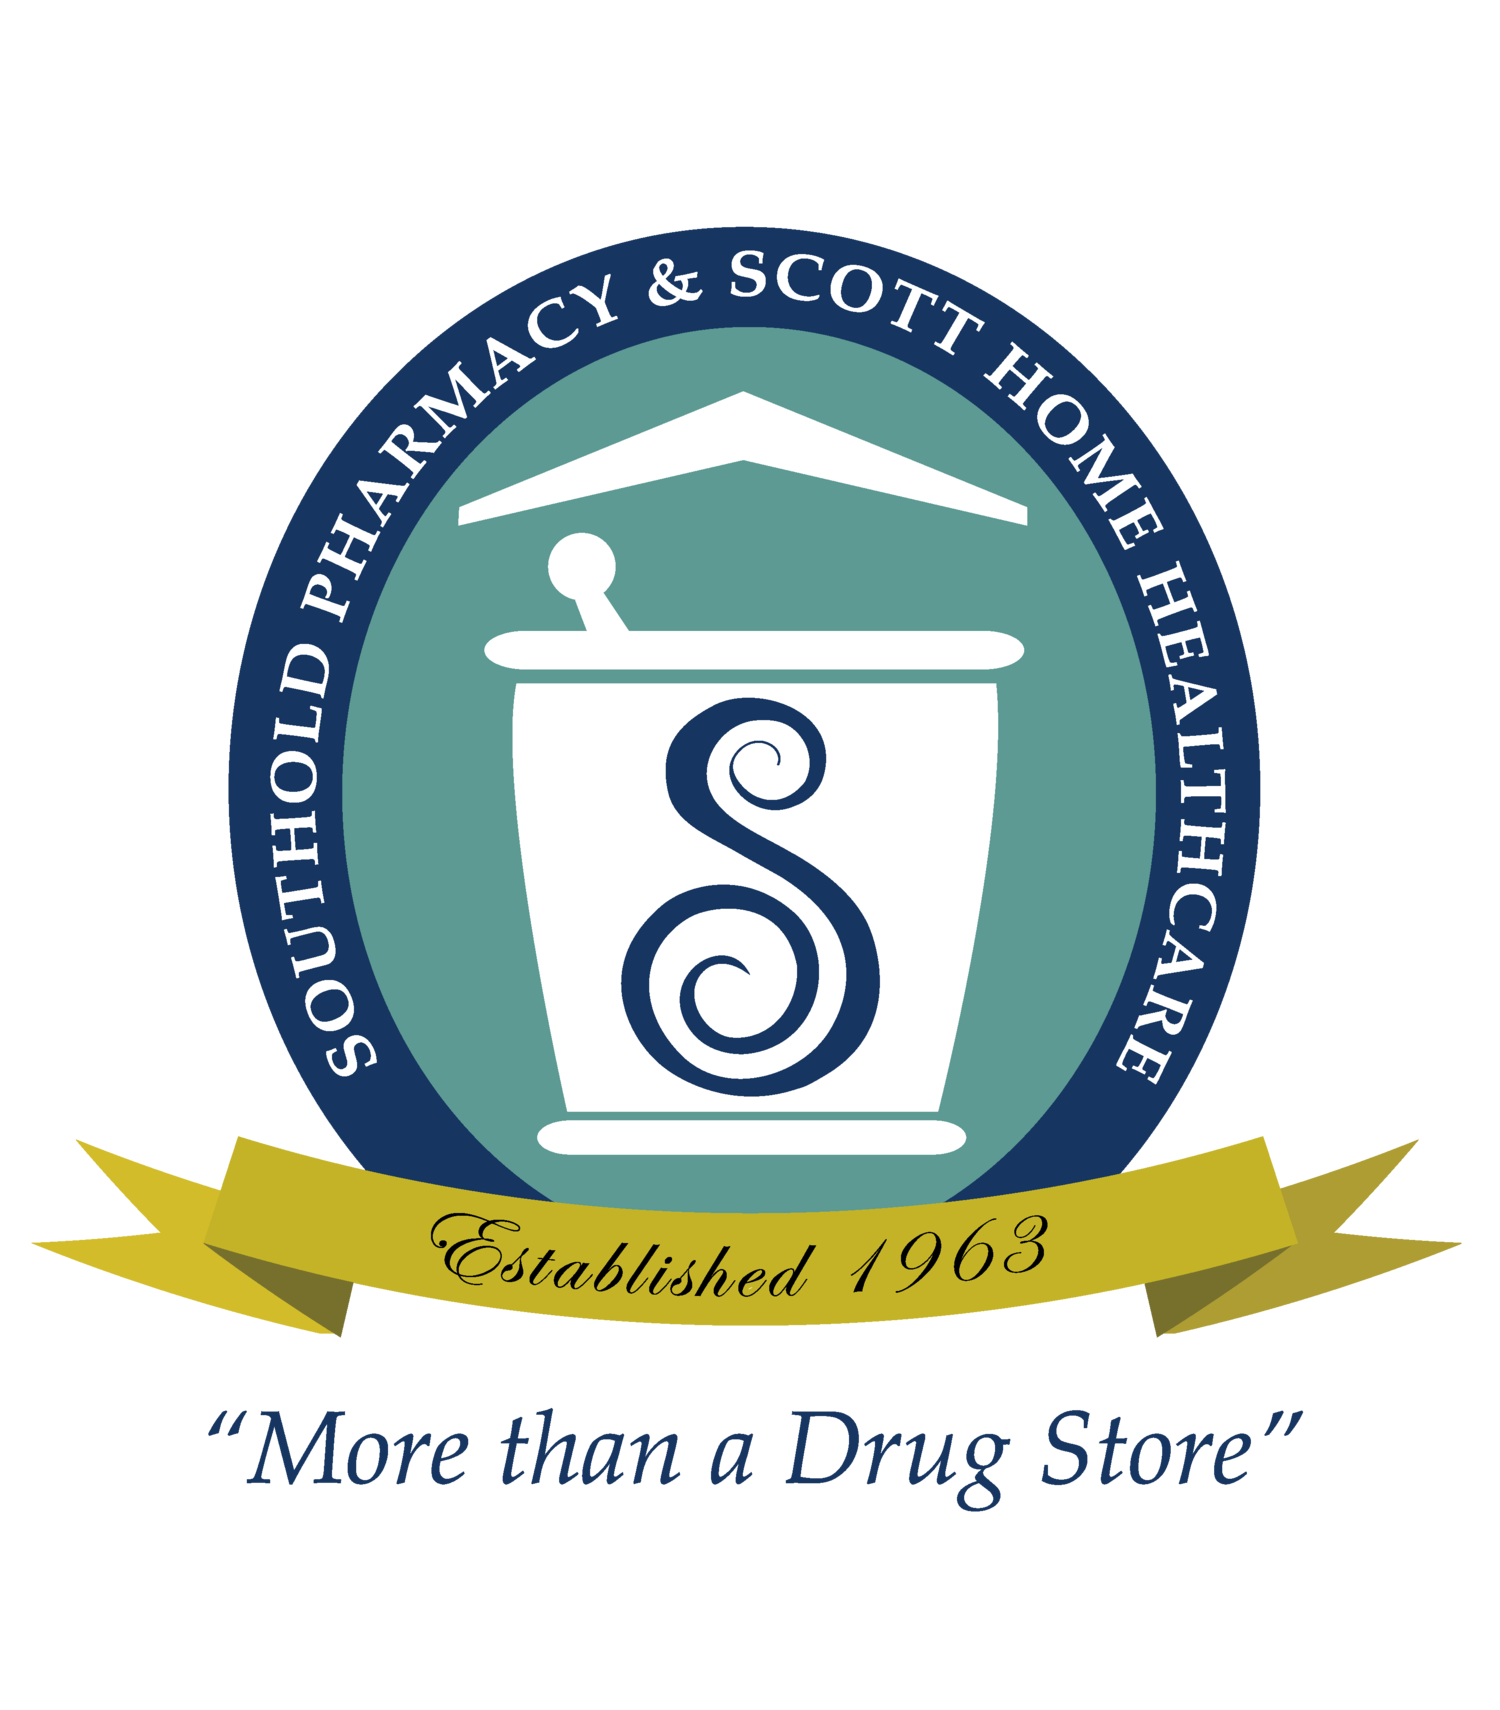 Southold Pharmacy